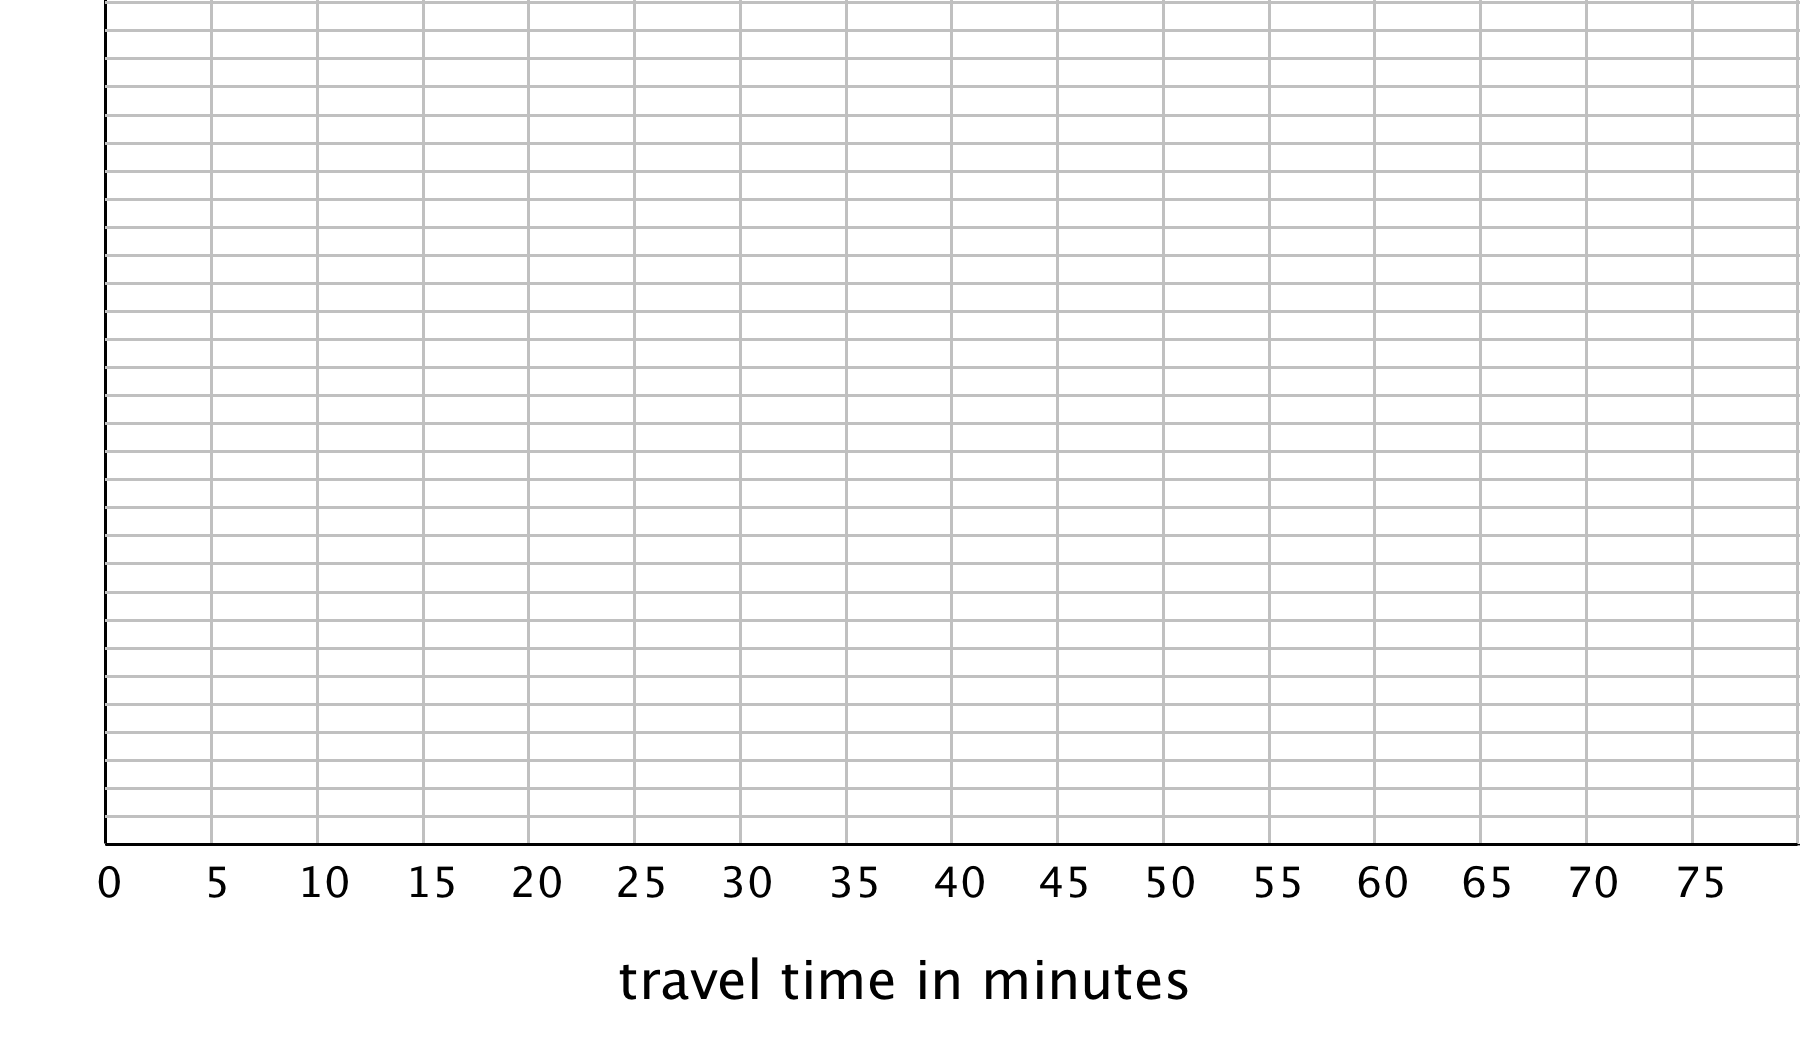 "A blank histogram: The horizontal axis is labeled ""travel time in minutes"" and the numbers 0 through 75, in increments of 5, are indicated. The vertical axis has 30 horizontal gridlines indicated."